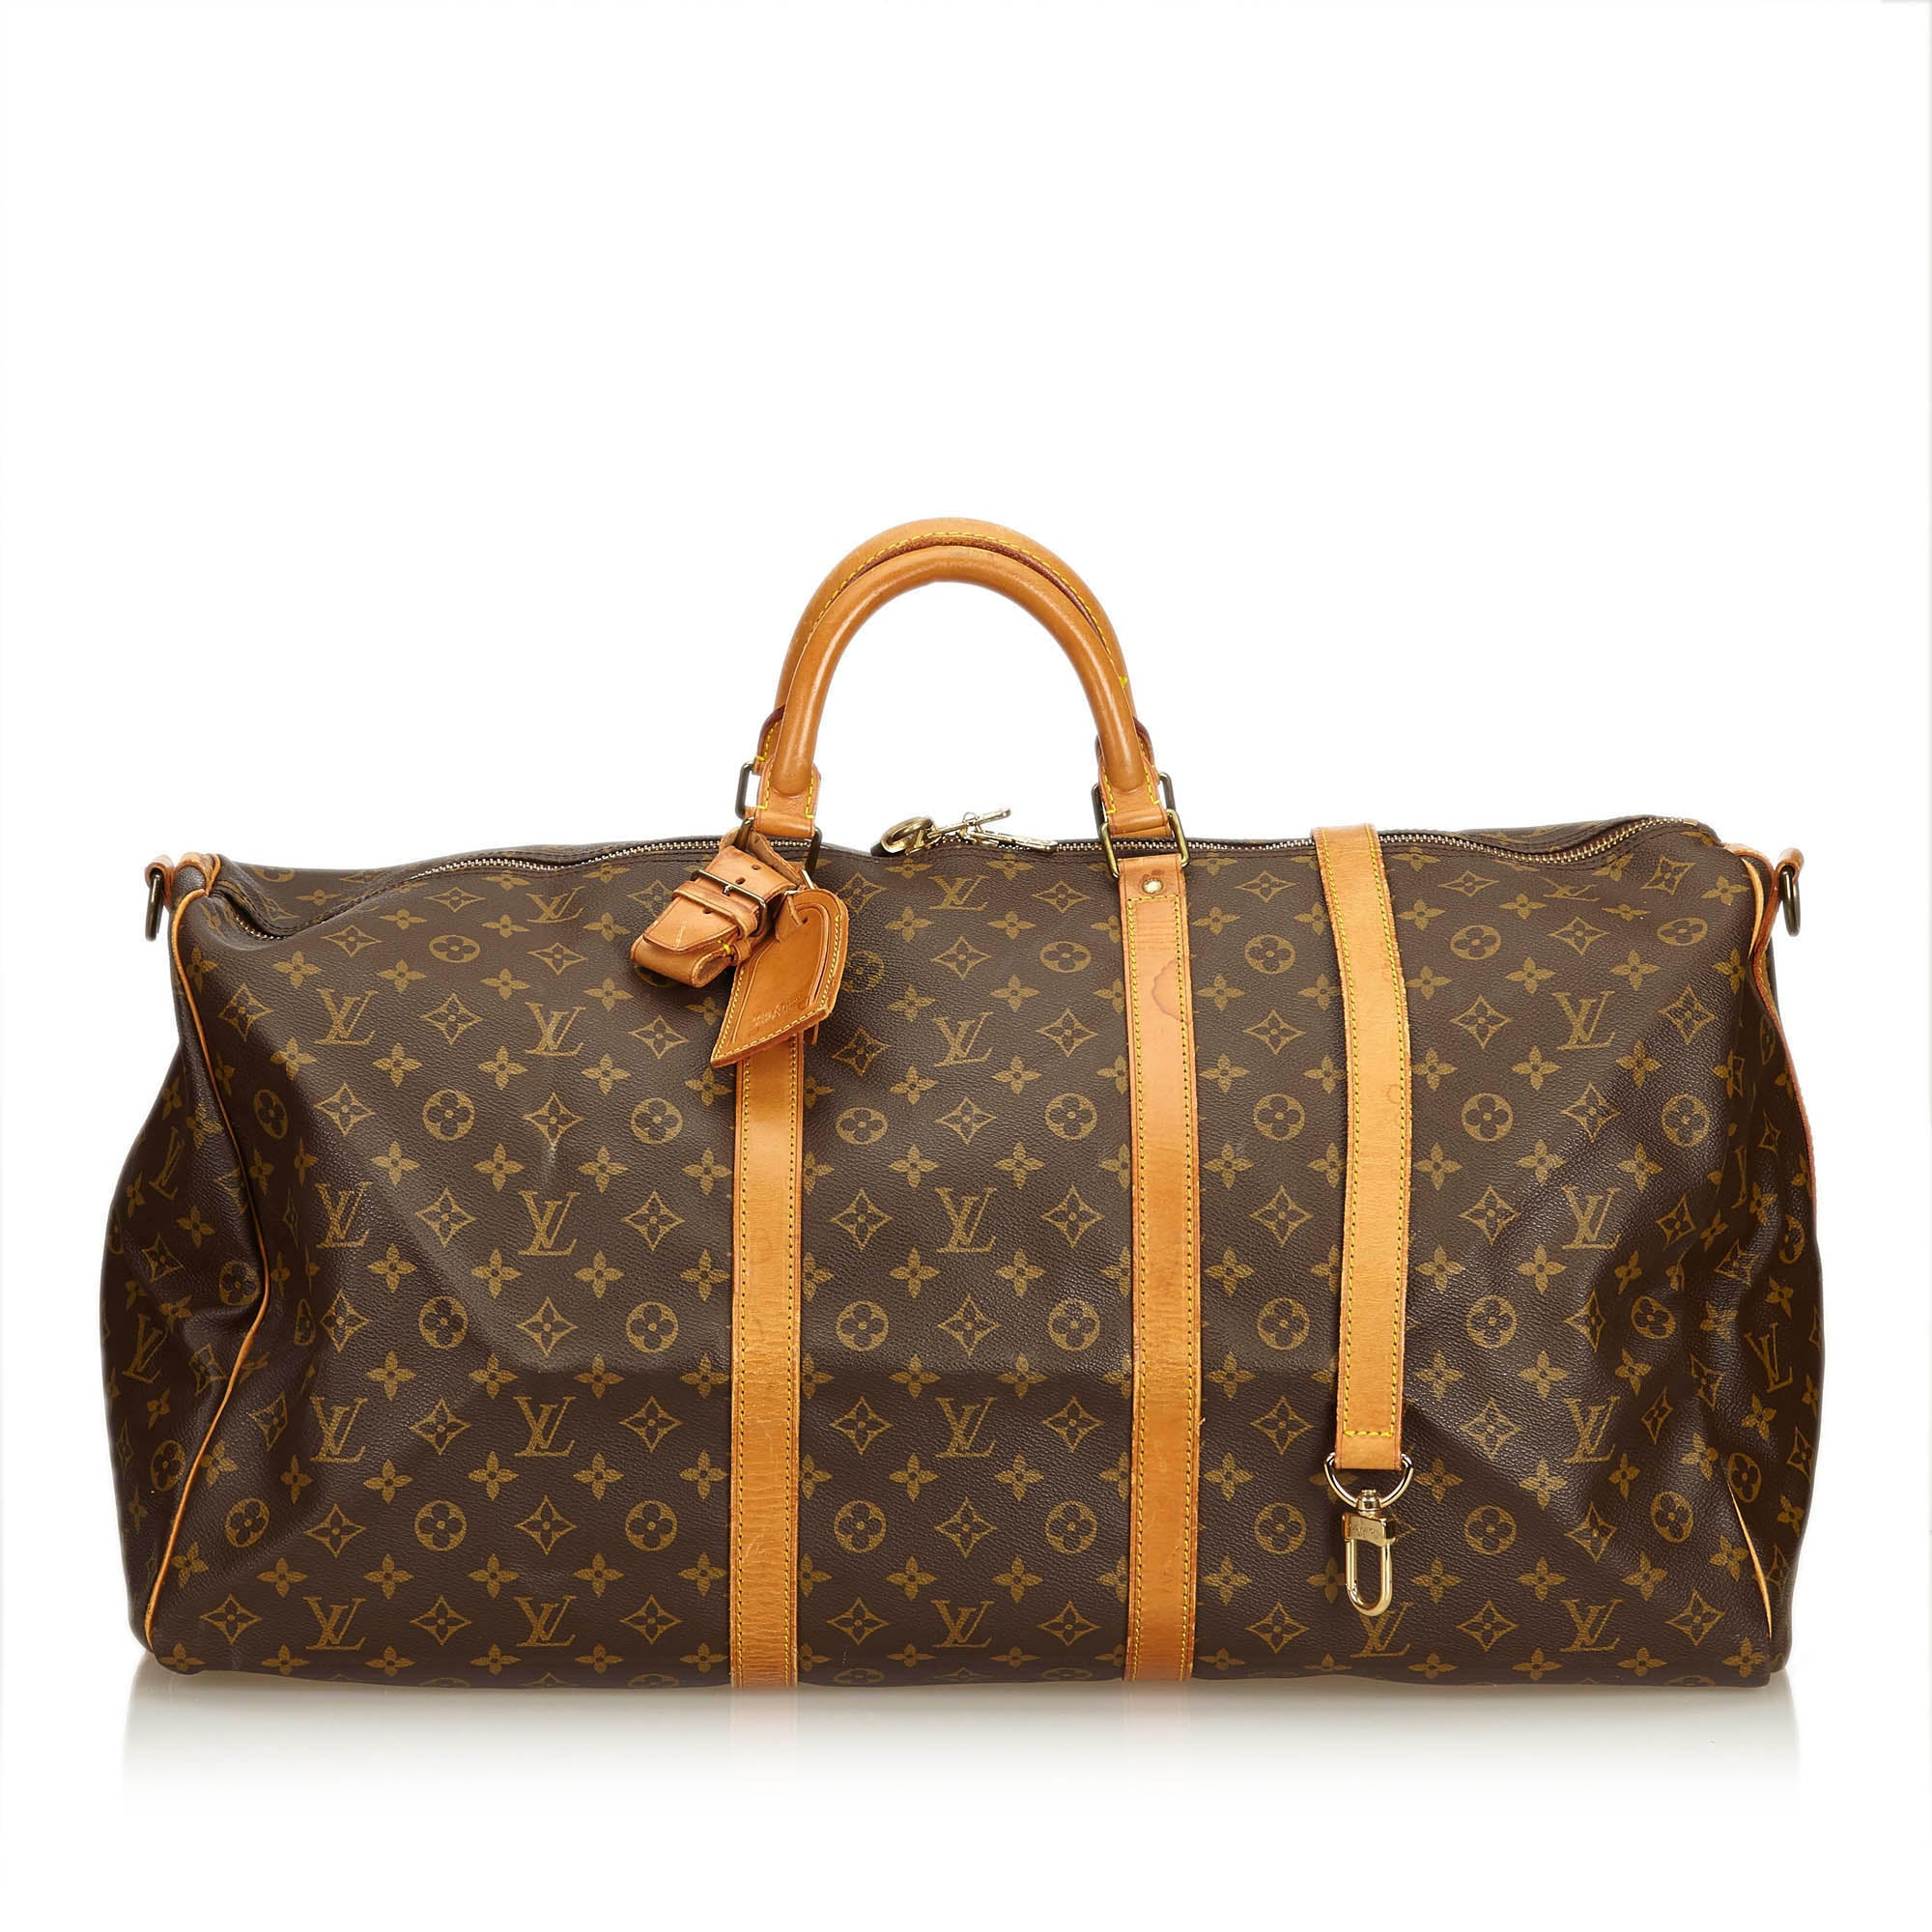 Louis Vuitton Keepall 60 - Iconics Preloved Luxury